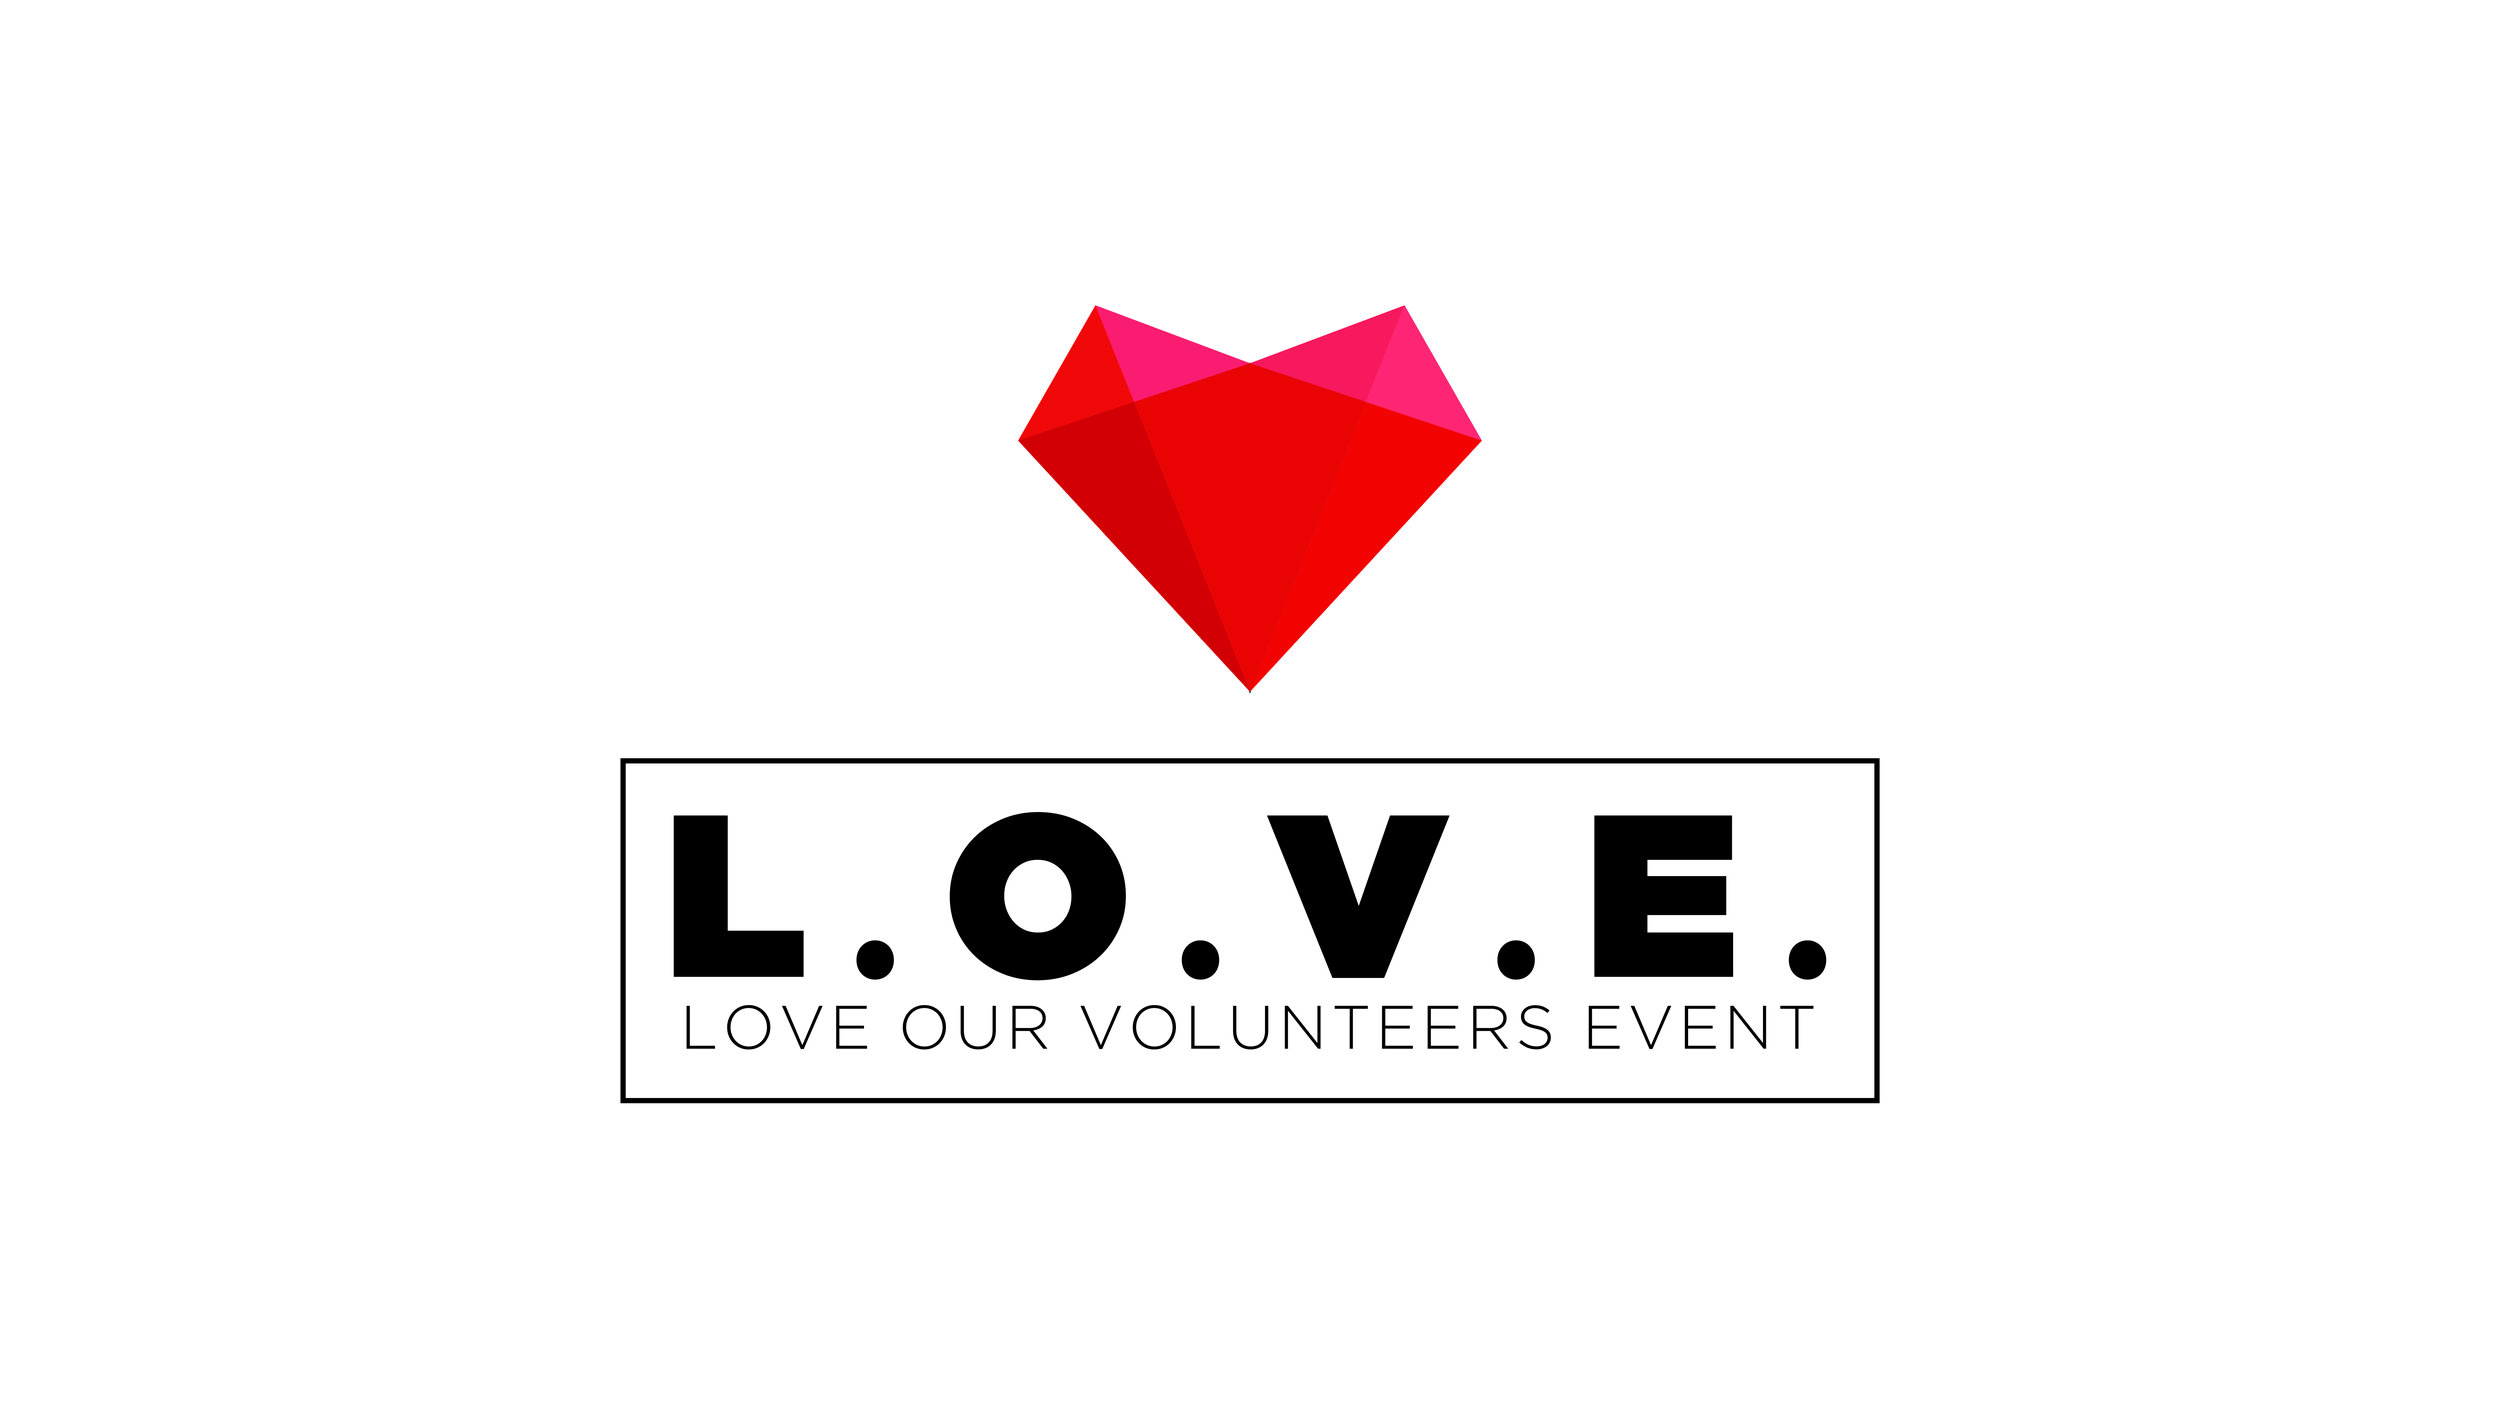 love_volunteers-03.jpg